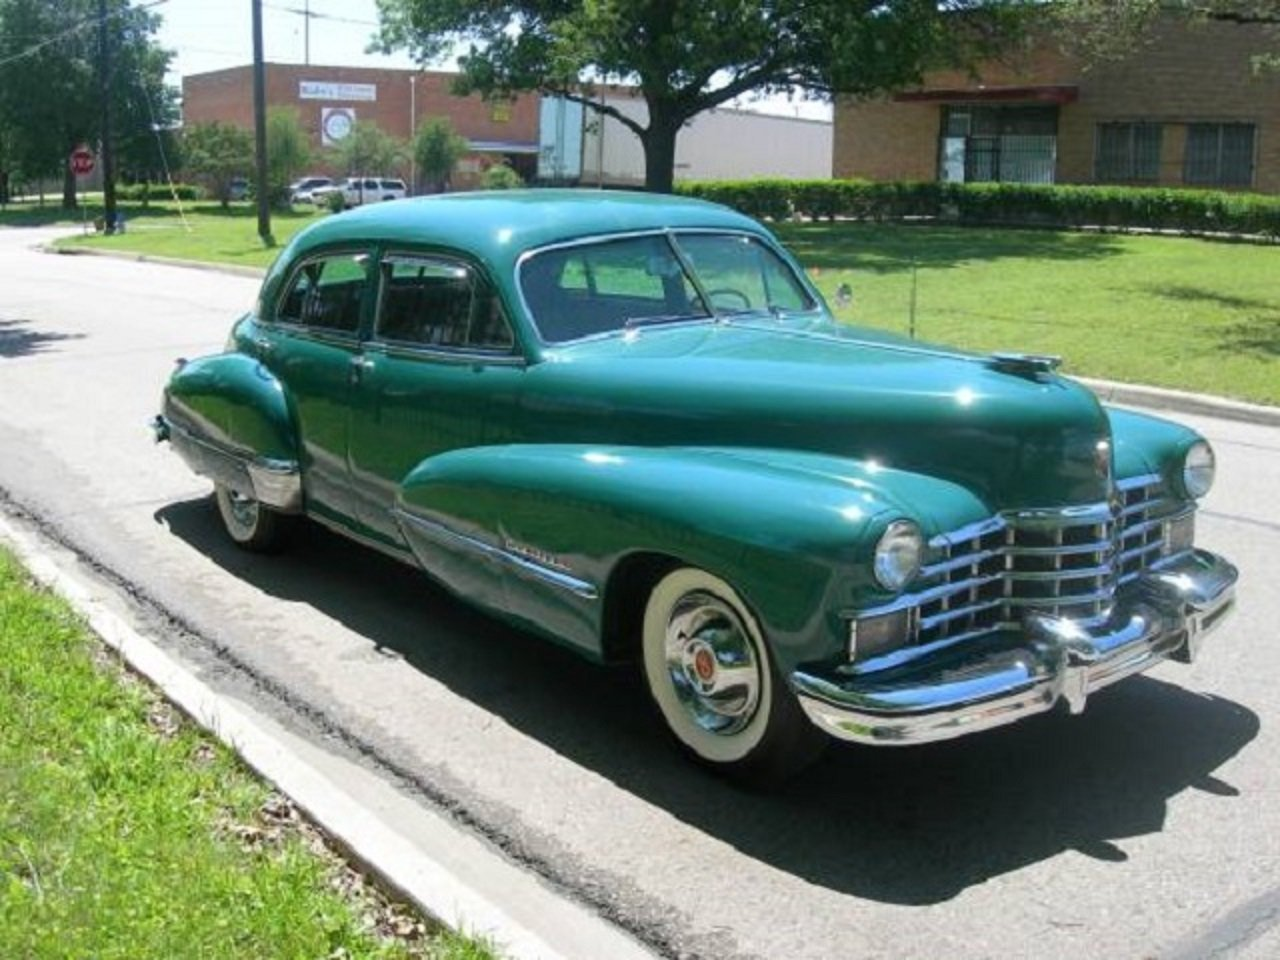 1947 Cadillac 62 4DR Sedan For Sale (picture 2 of 6)